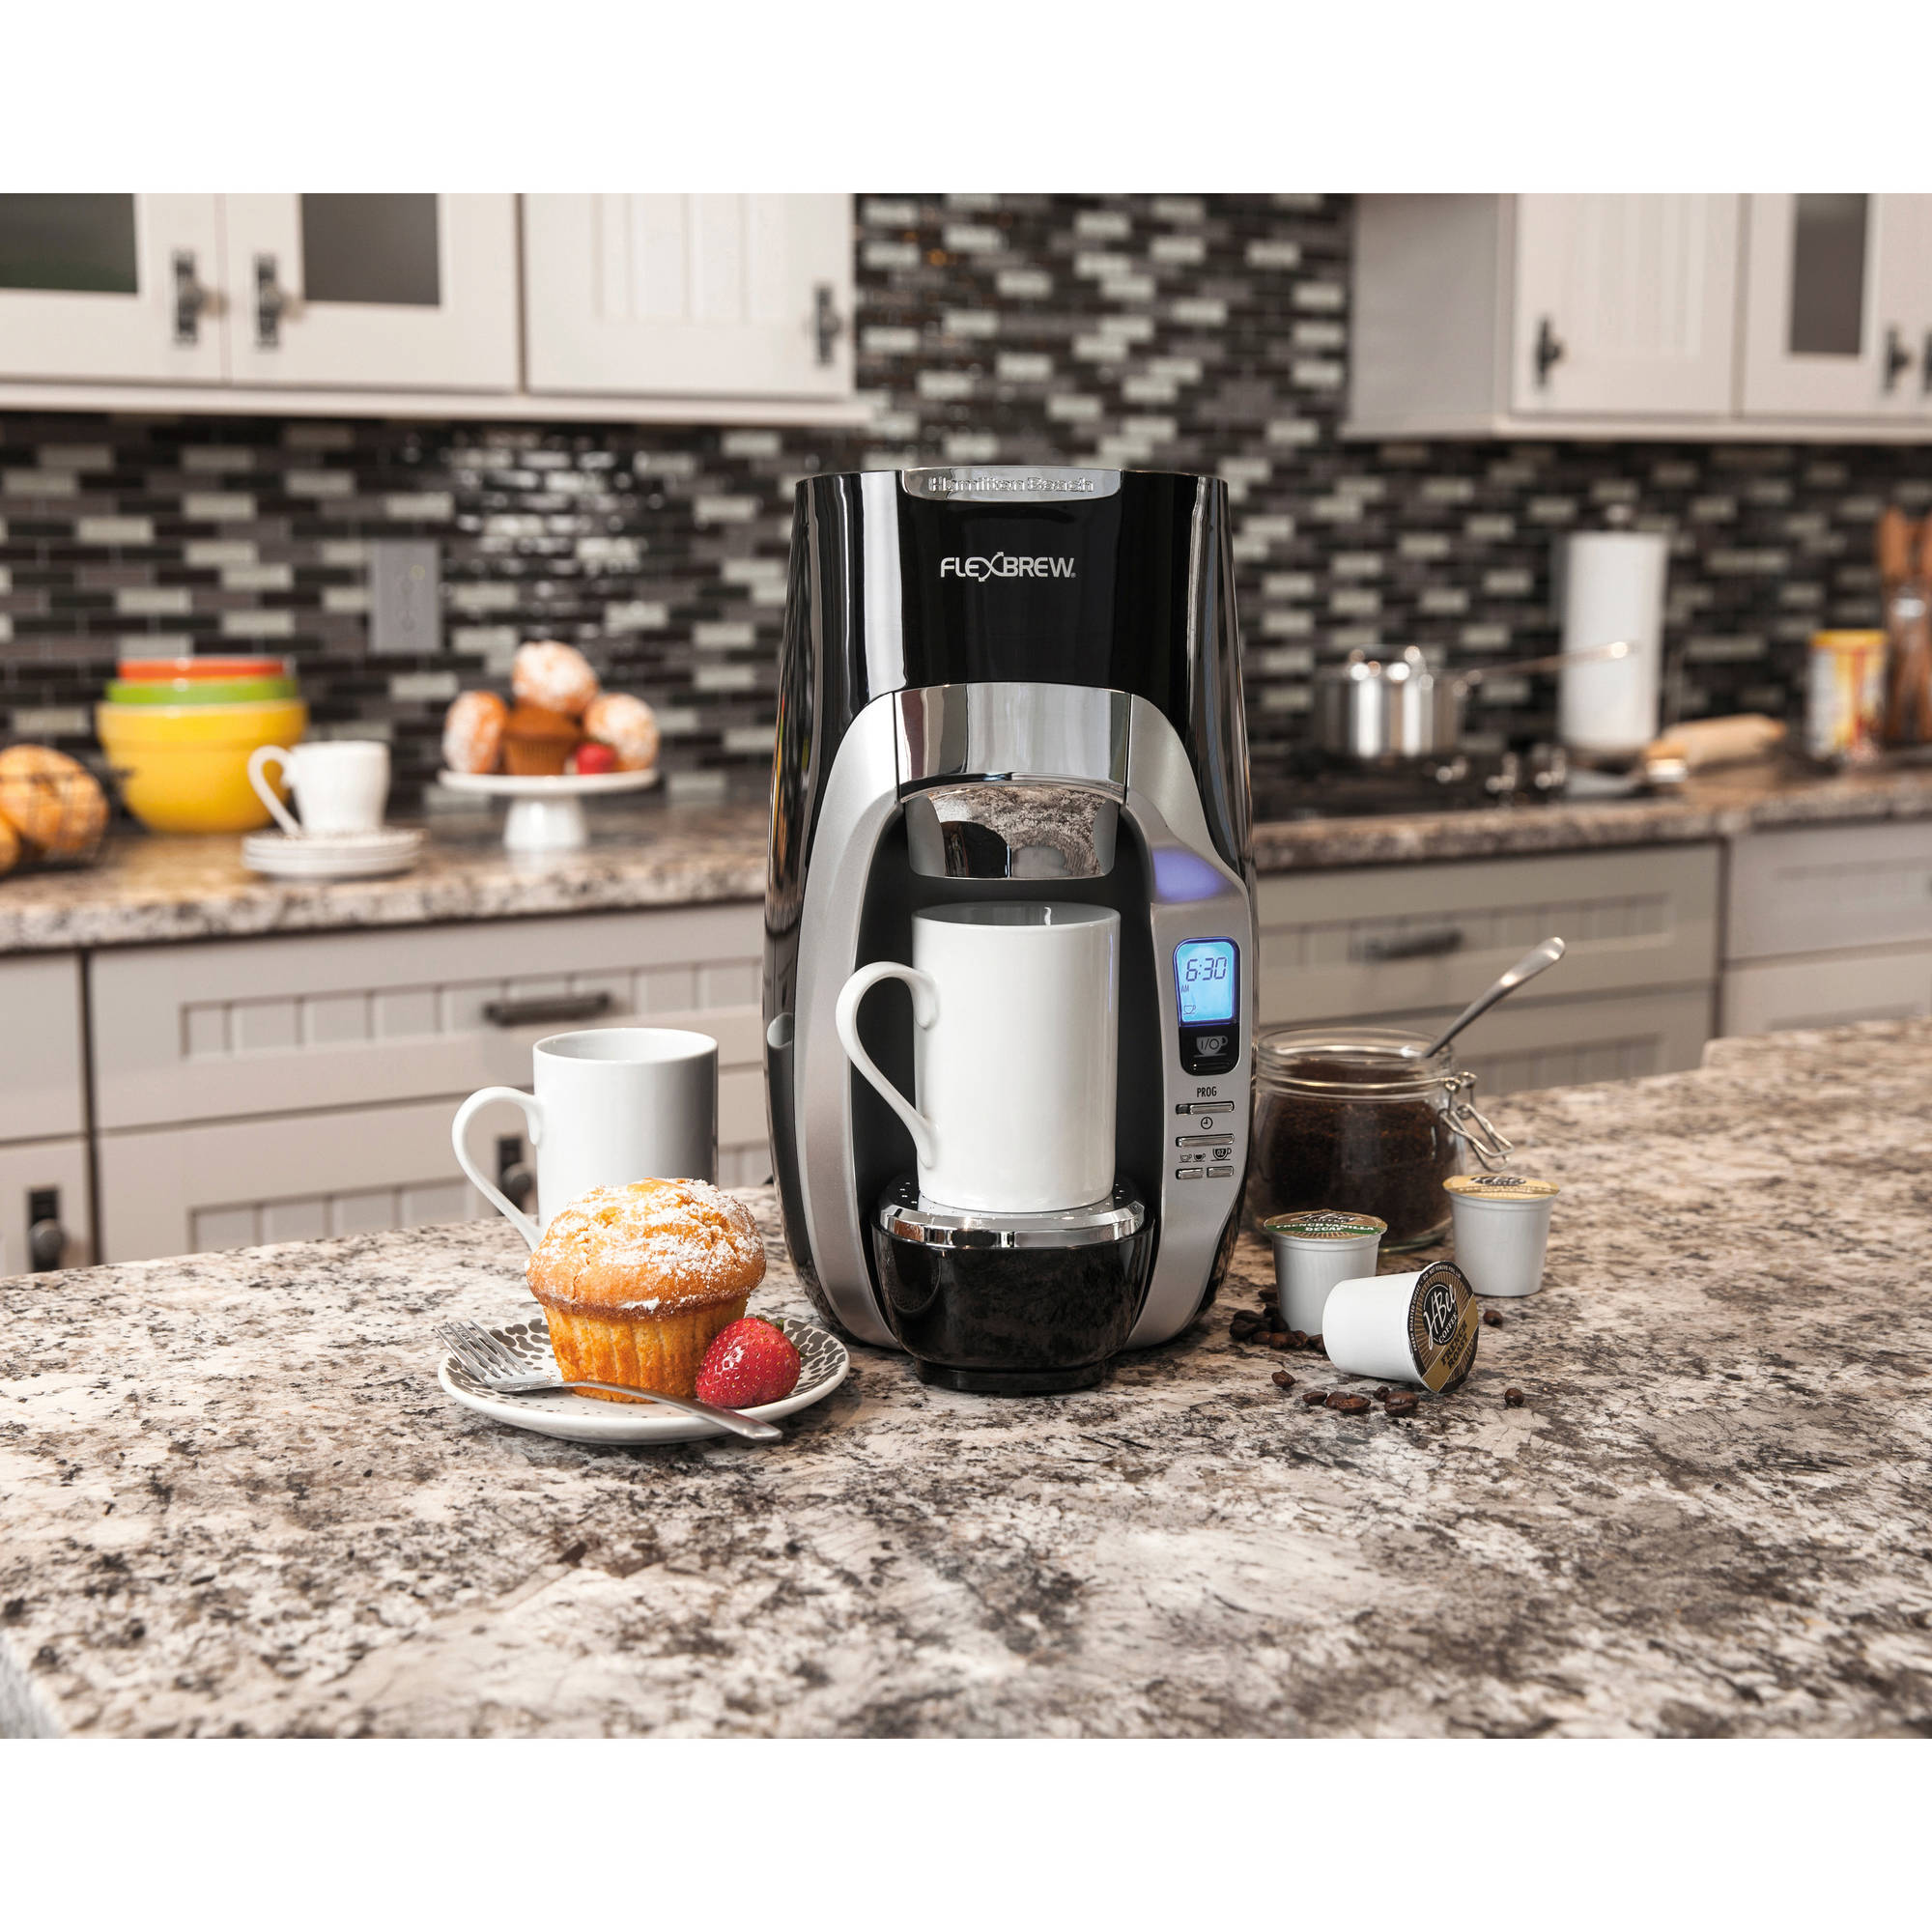 Hamilton Beach FlexBrew Single Serve Coffee Maker with Removable 40oz Reservoir | Model# 49996